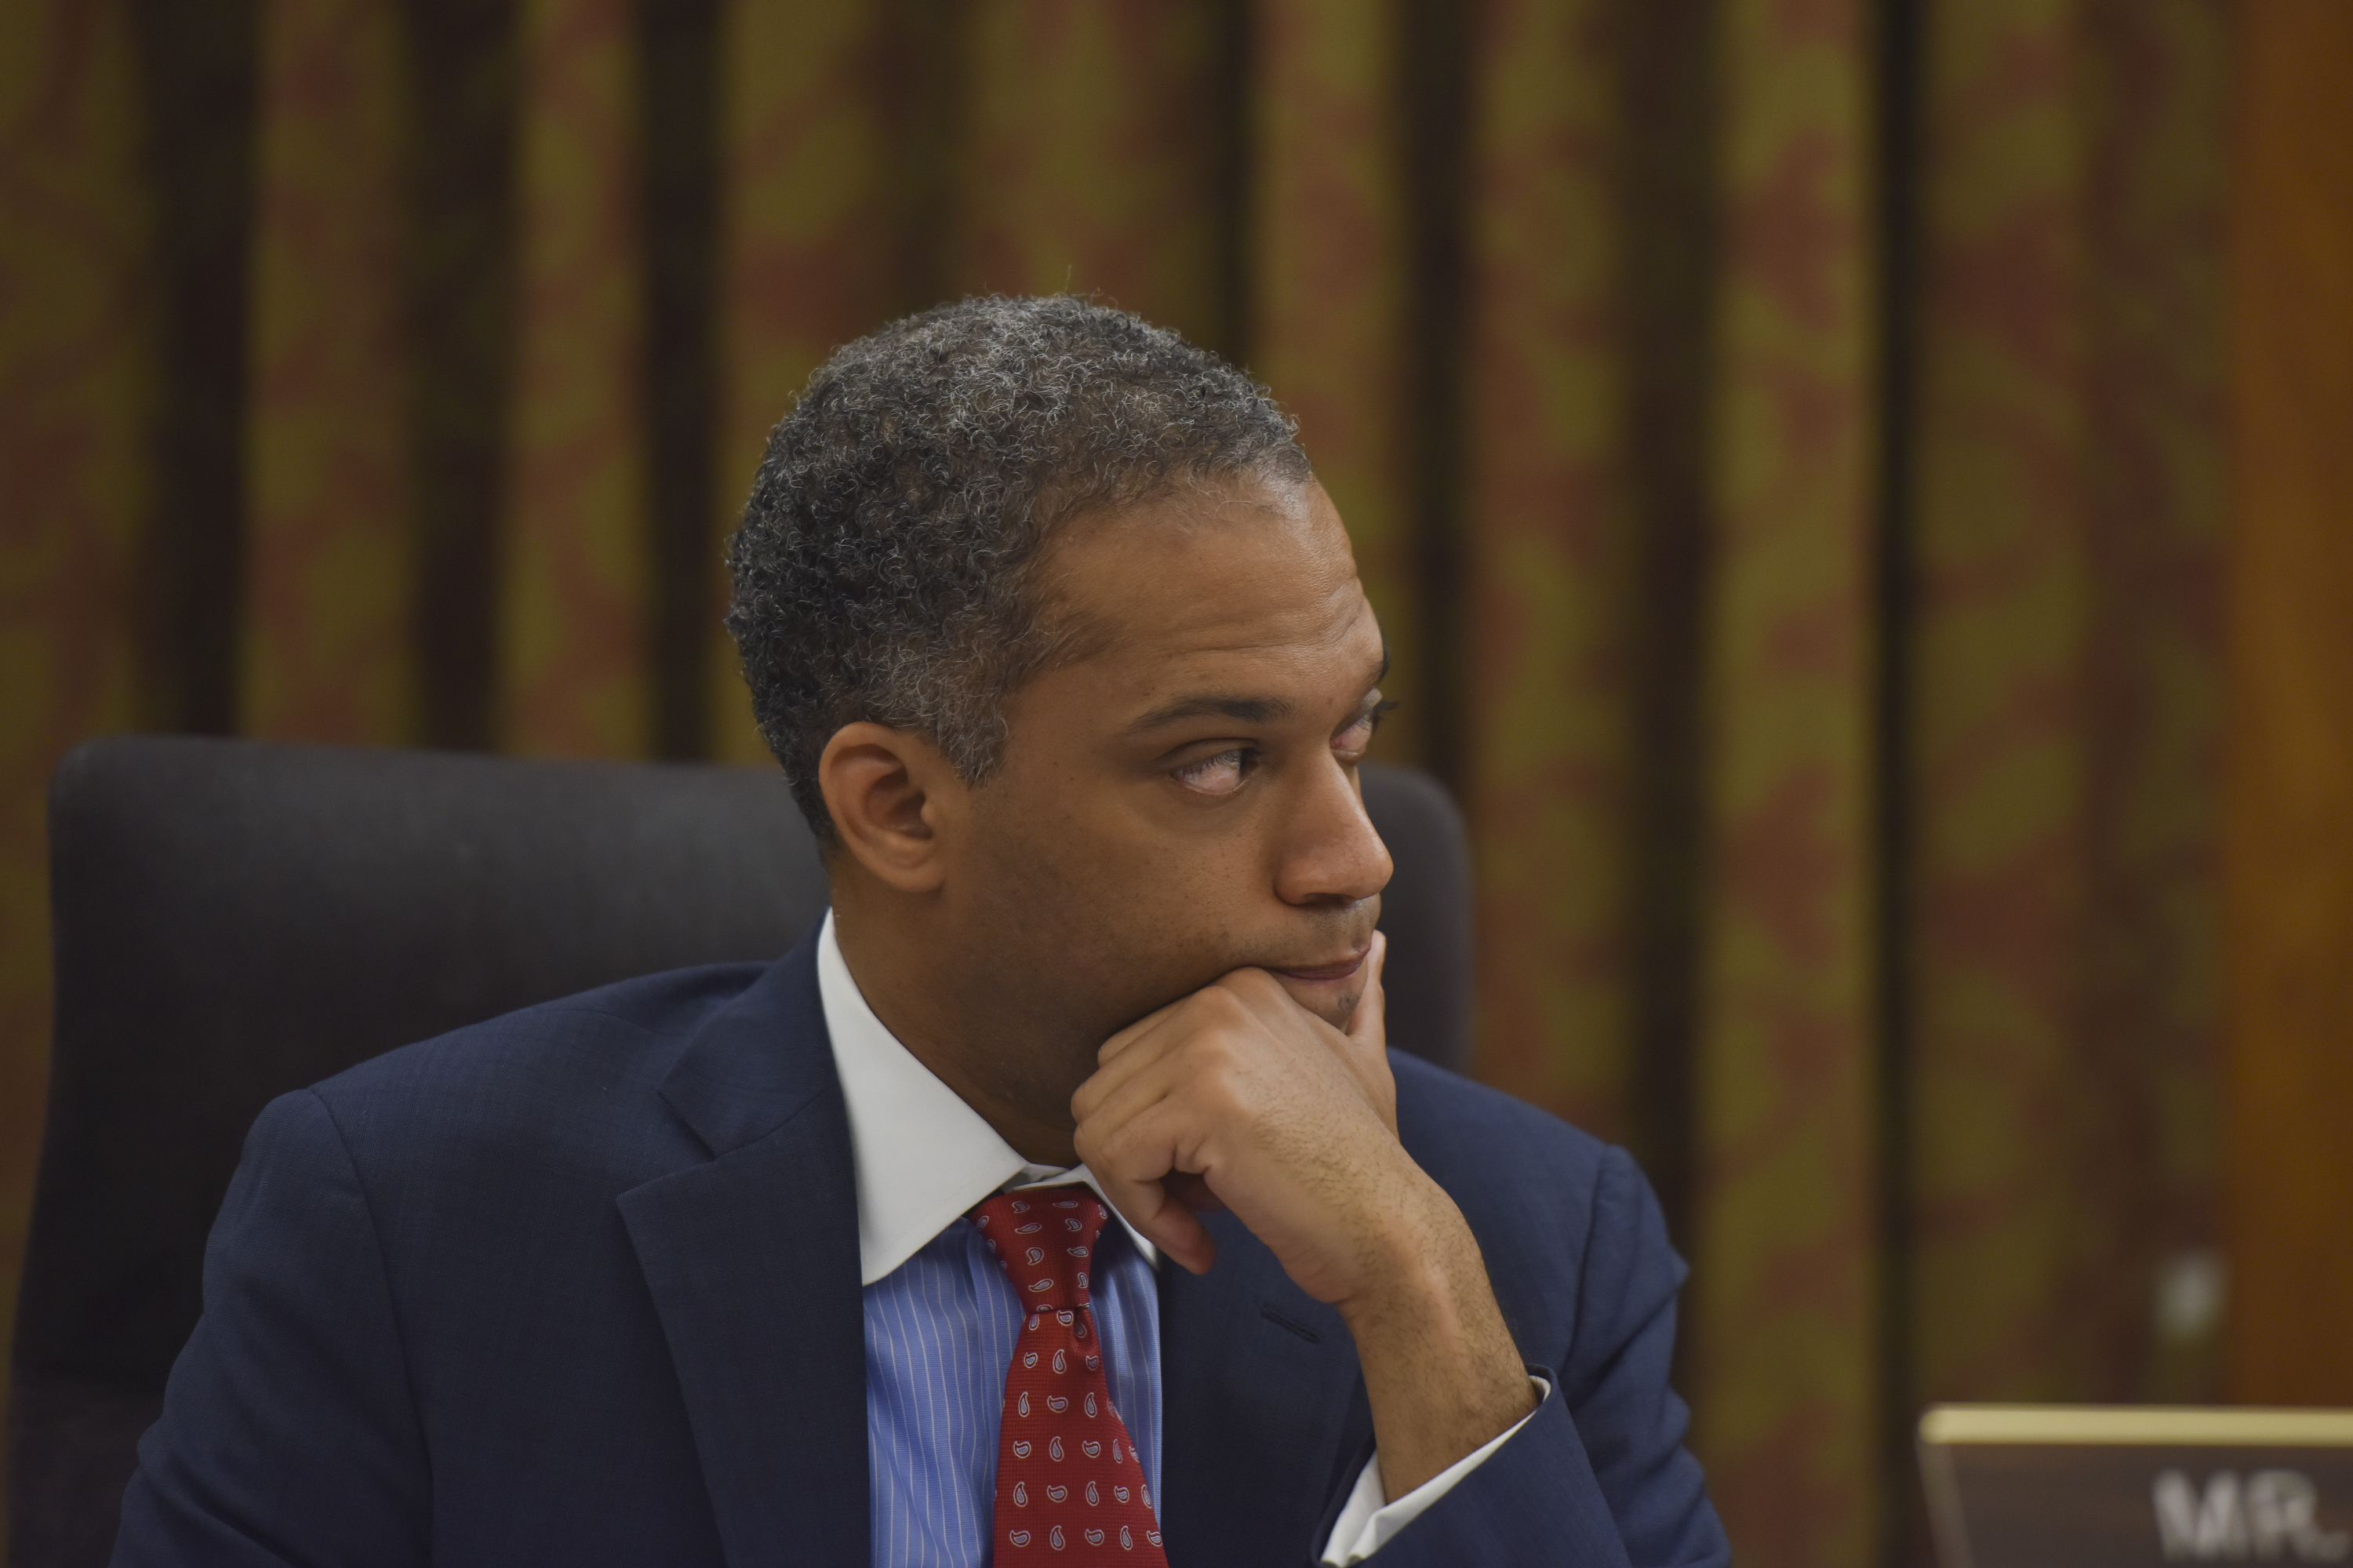 D.C. Council member Brandon Todd reprimanded for improper use of emails -  The Washington Post